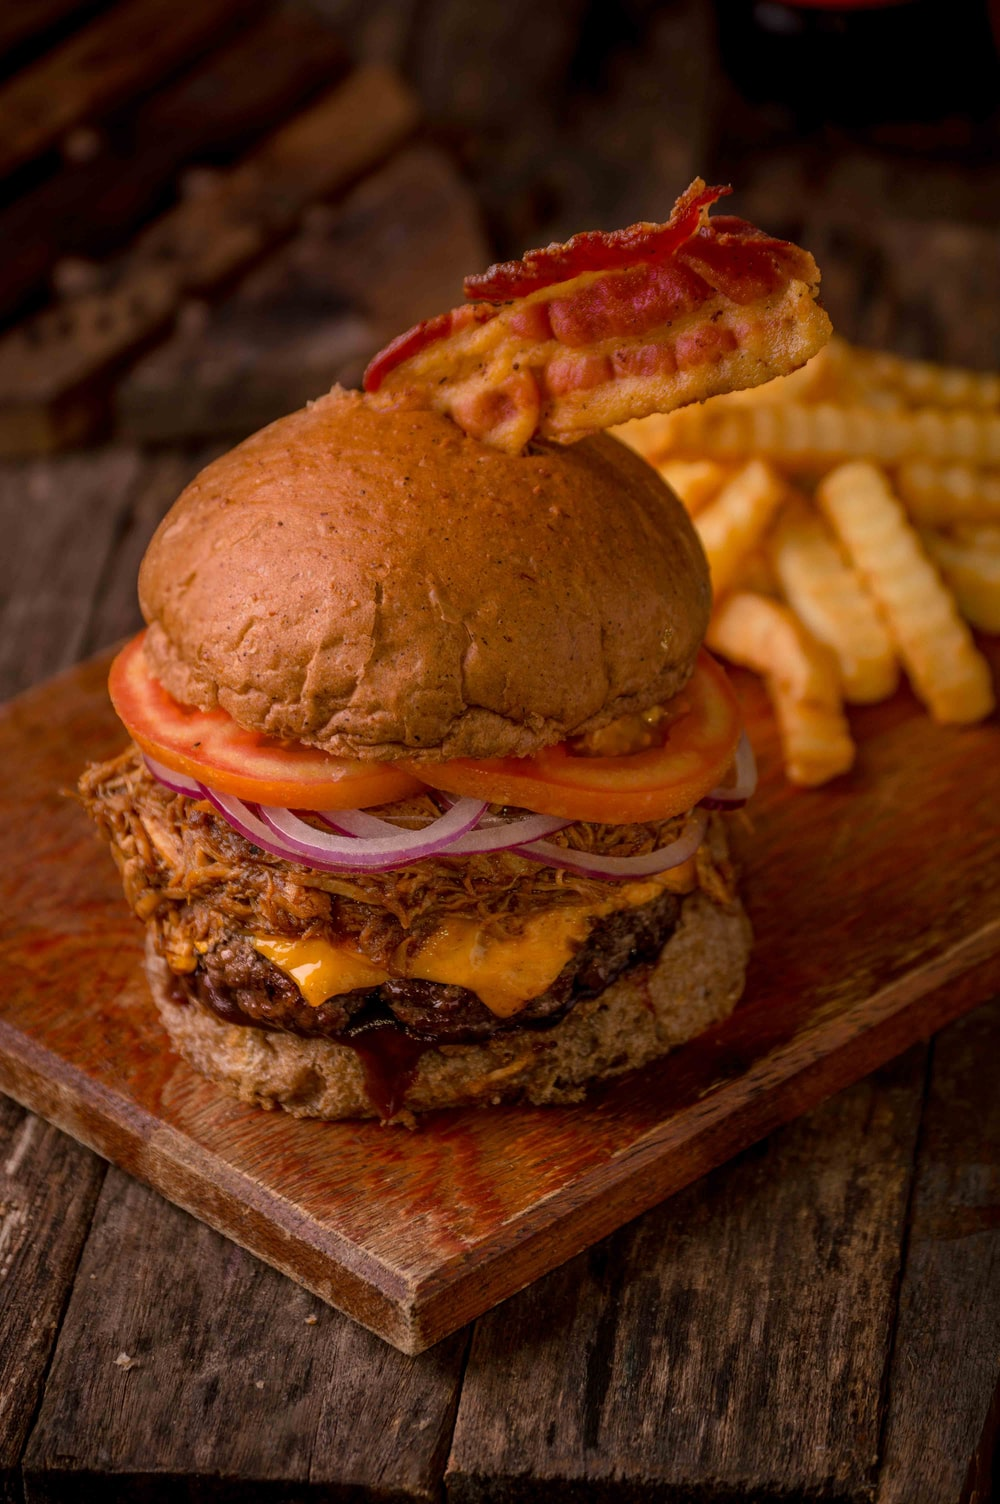 burger with onion and tomatoes